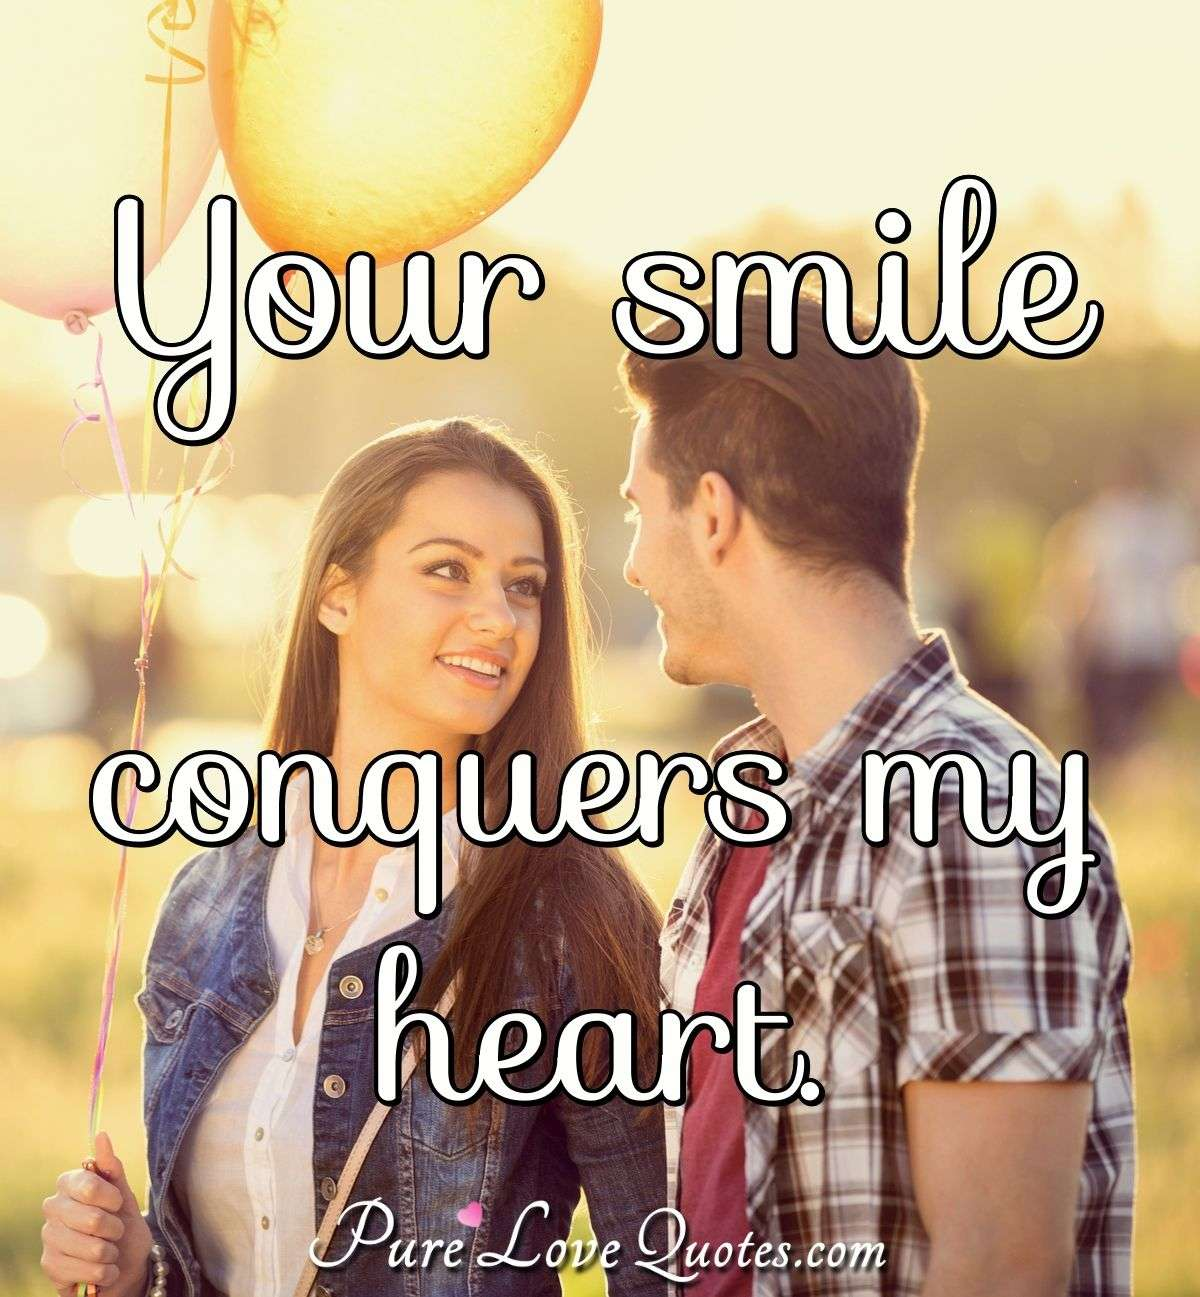 Your smile conquers my heart. - PureLoveQuotes.com